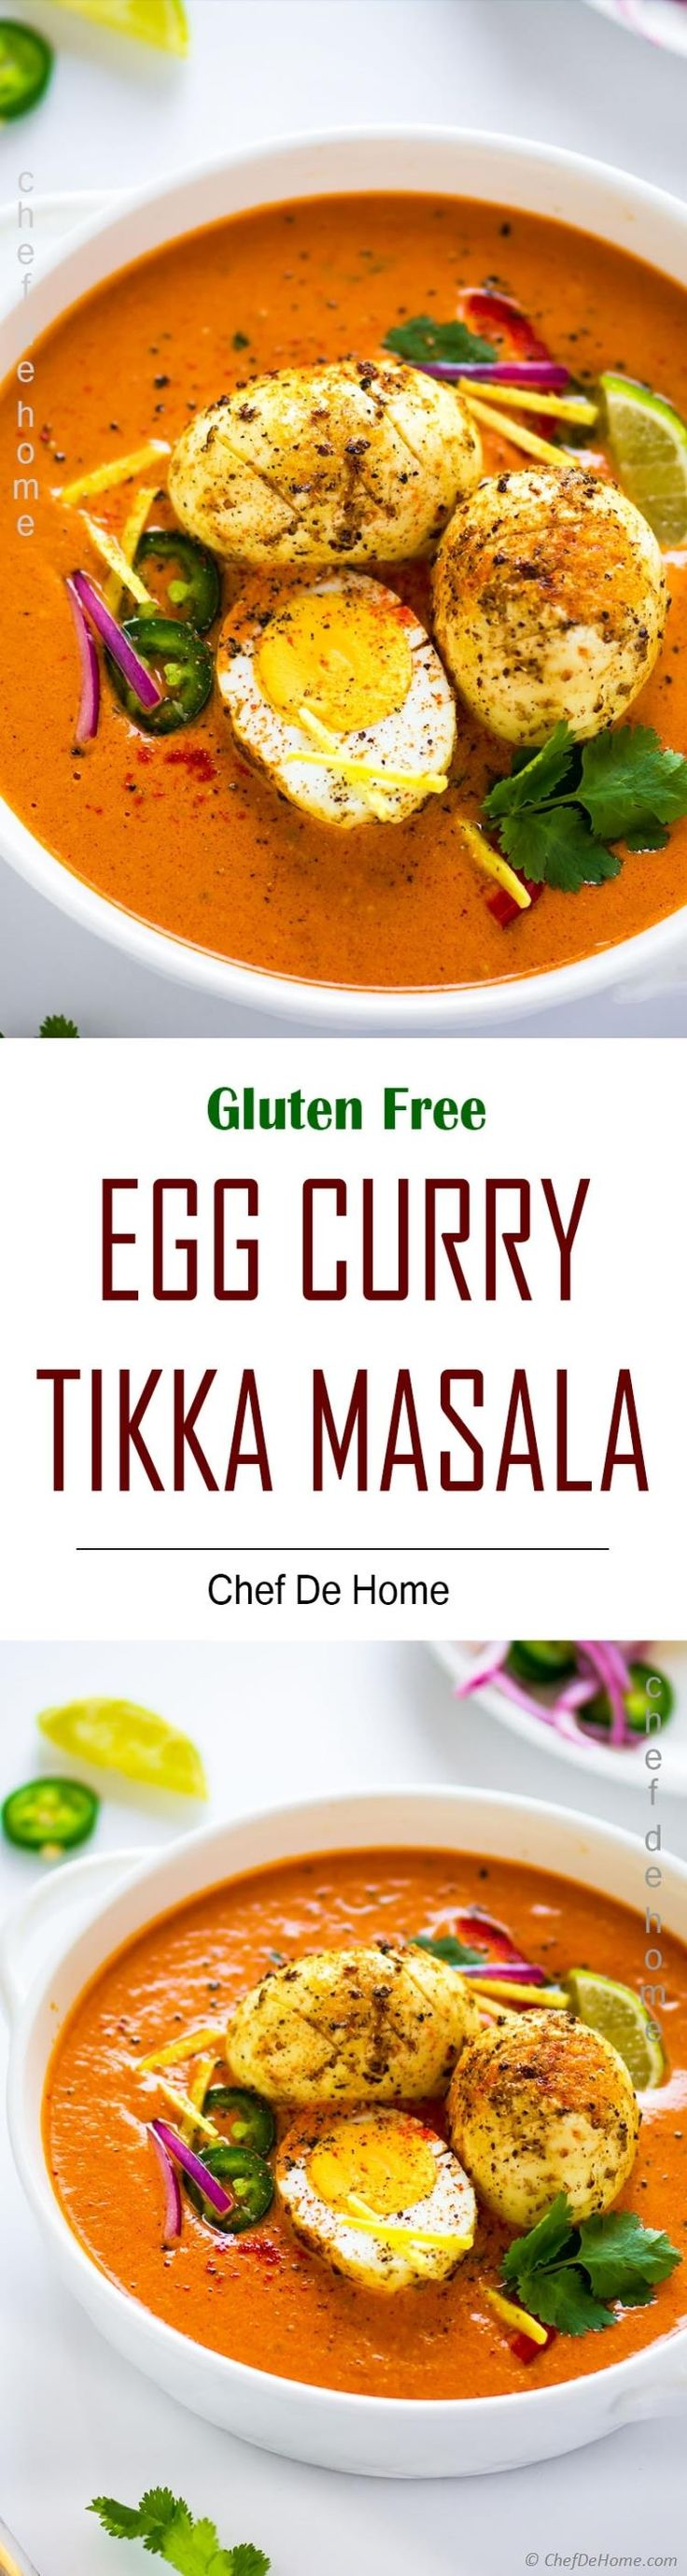 Egg Curry Tikka Masala A meatless Monday dinner with flavorful spiced marinated boiled eggs in creamy Tikka Masala Sauce. I call it - Egg Curry Tikka Masala